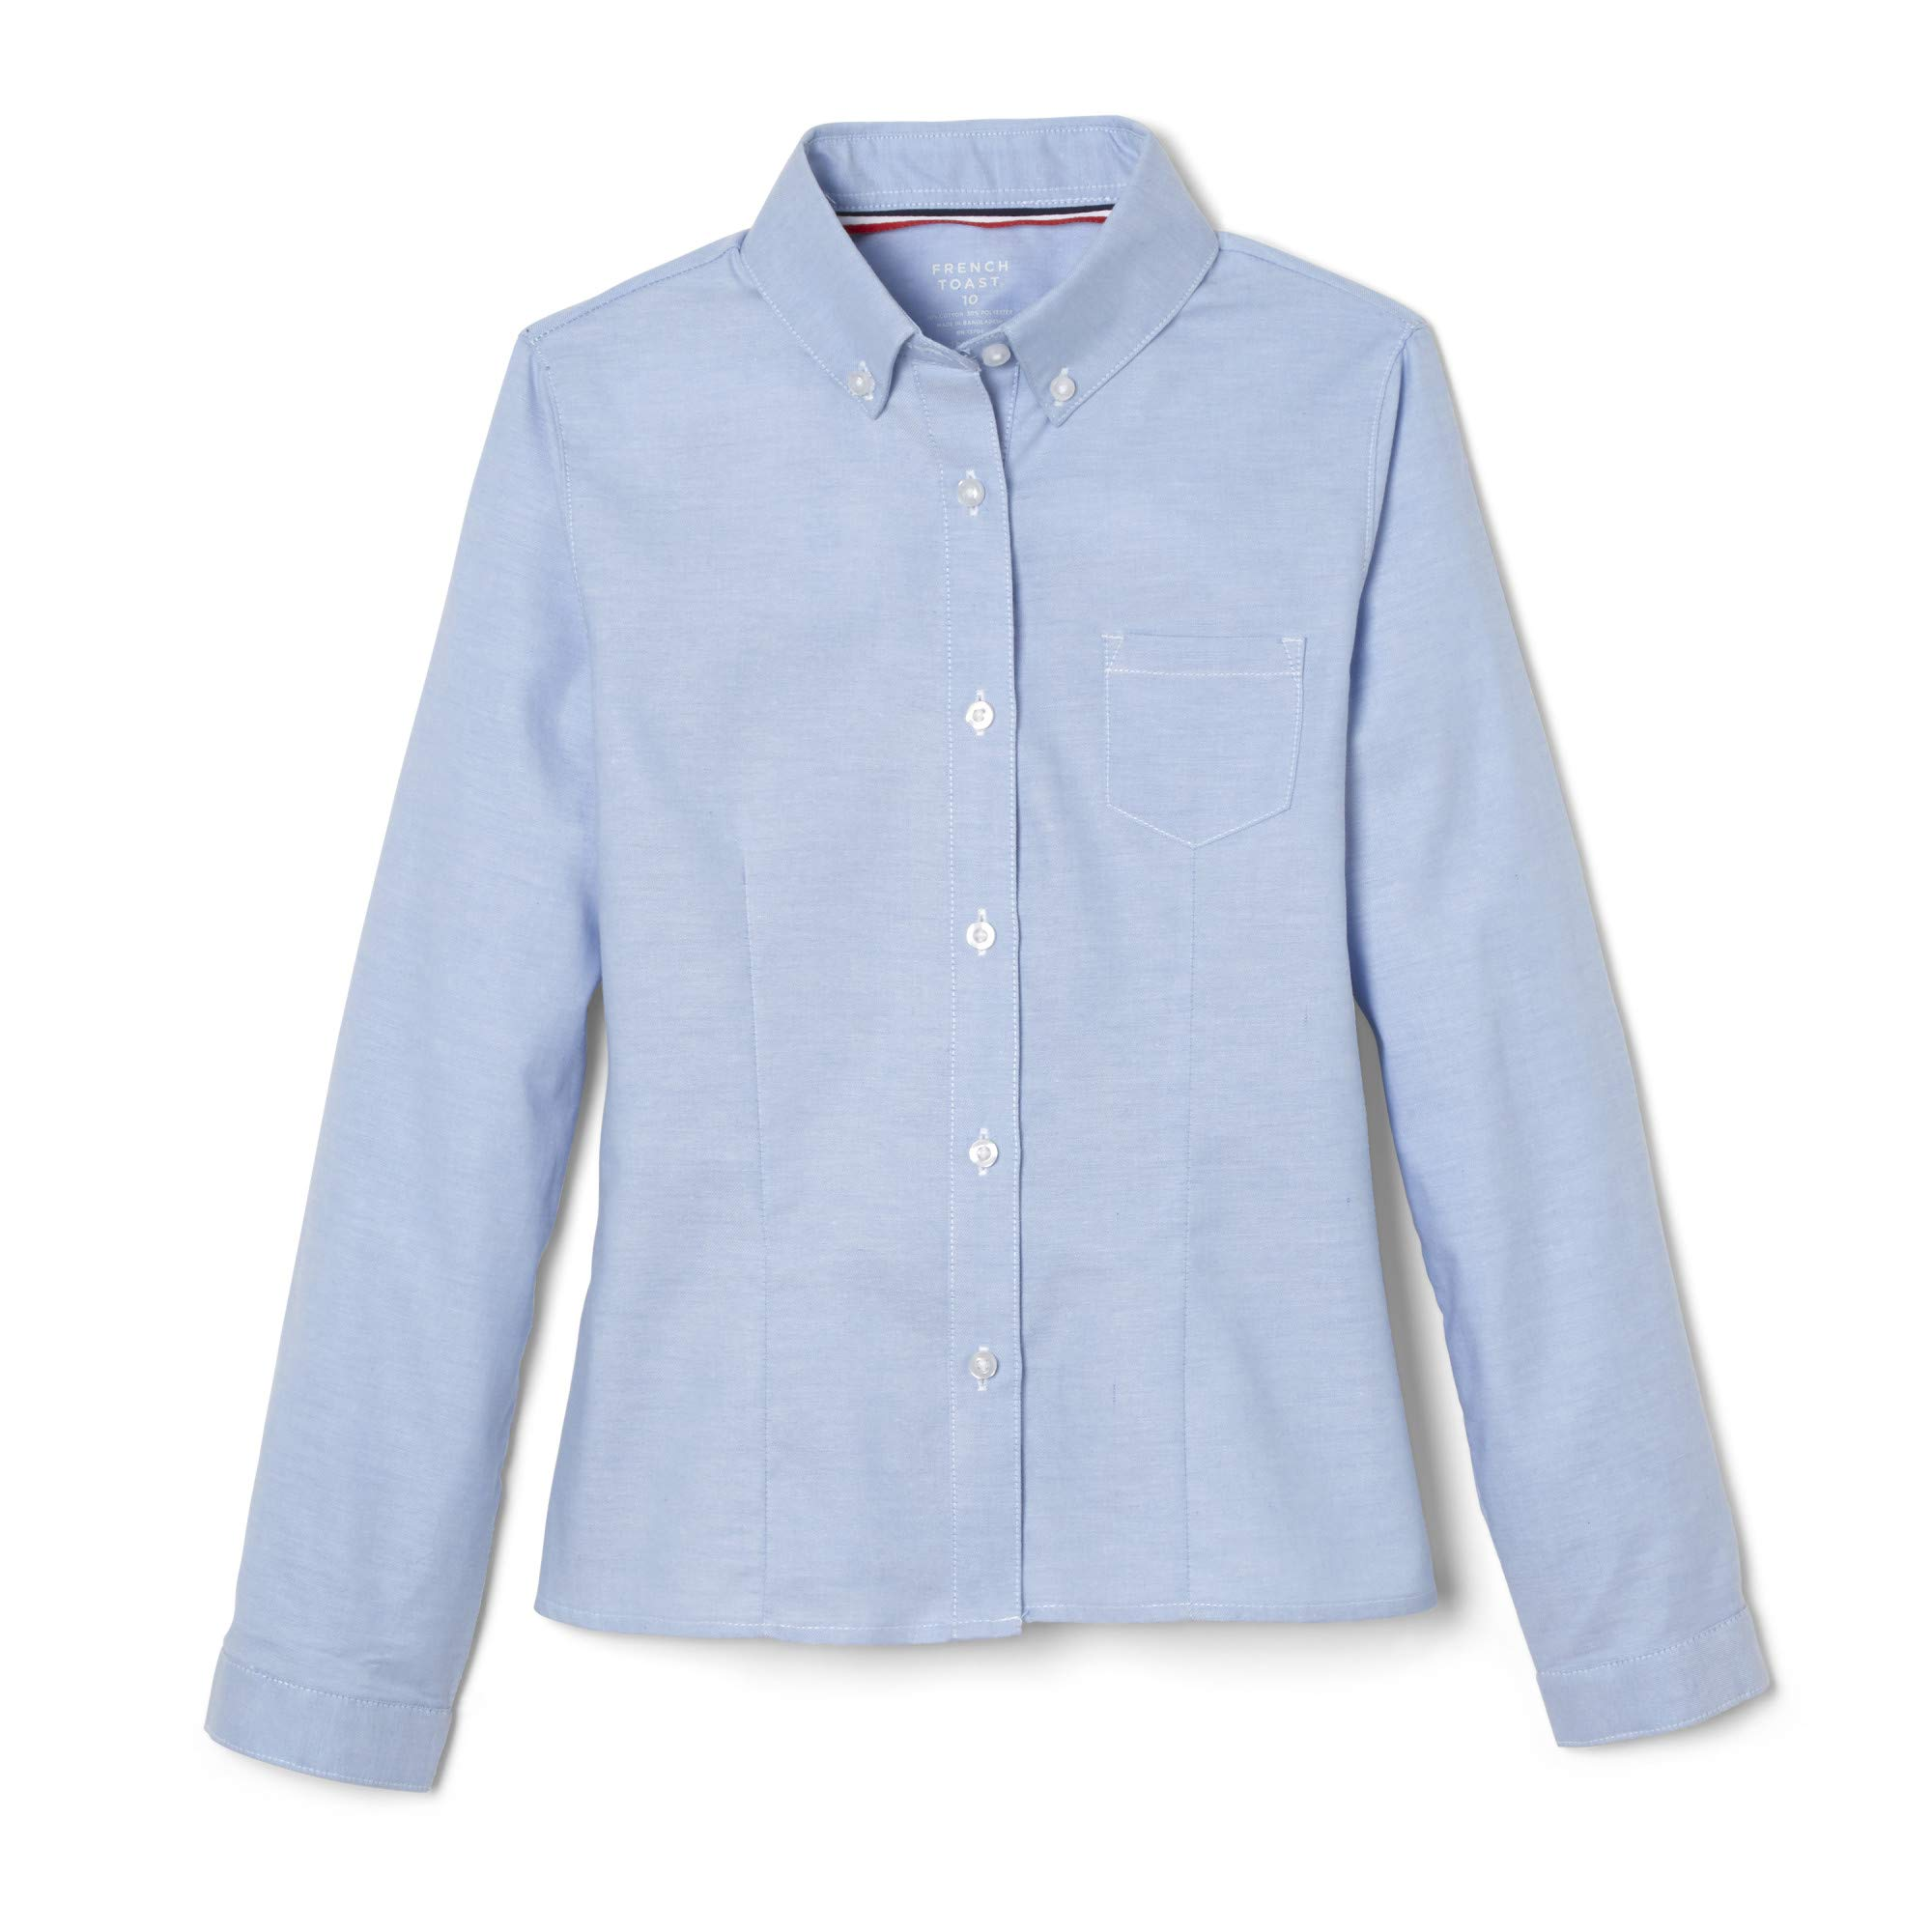 French Toast Big Girls' Long Sleeve Button Down Oxford, Light Blue, 16